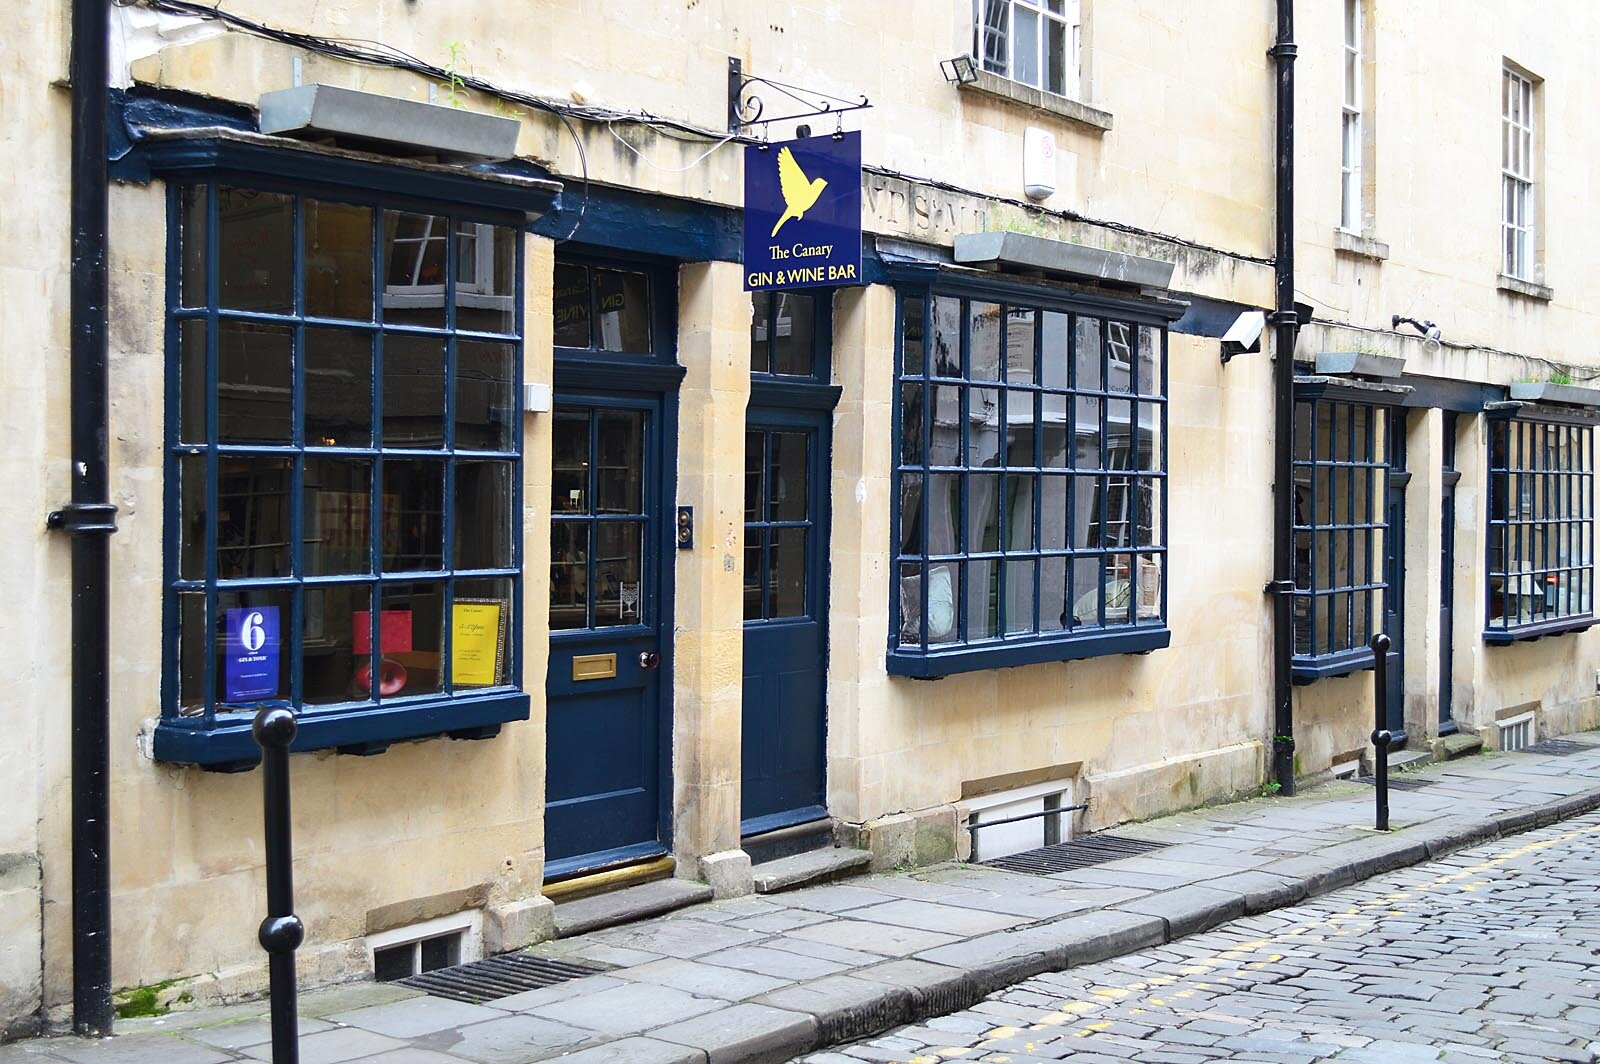 Canary Gin And Wine Bar Bath Pubs And Bars